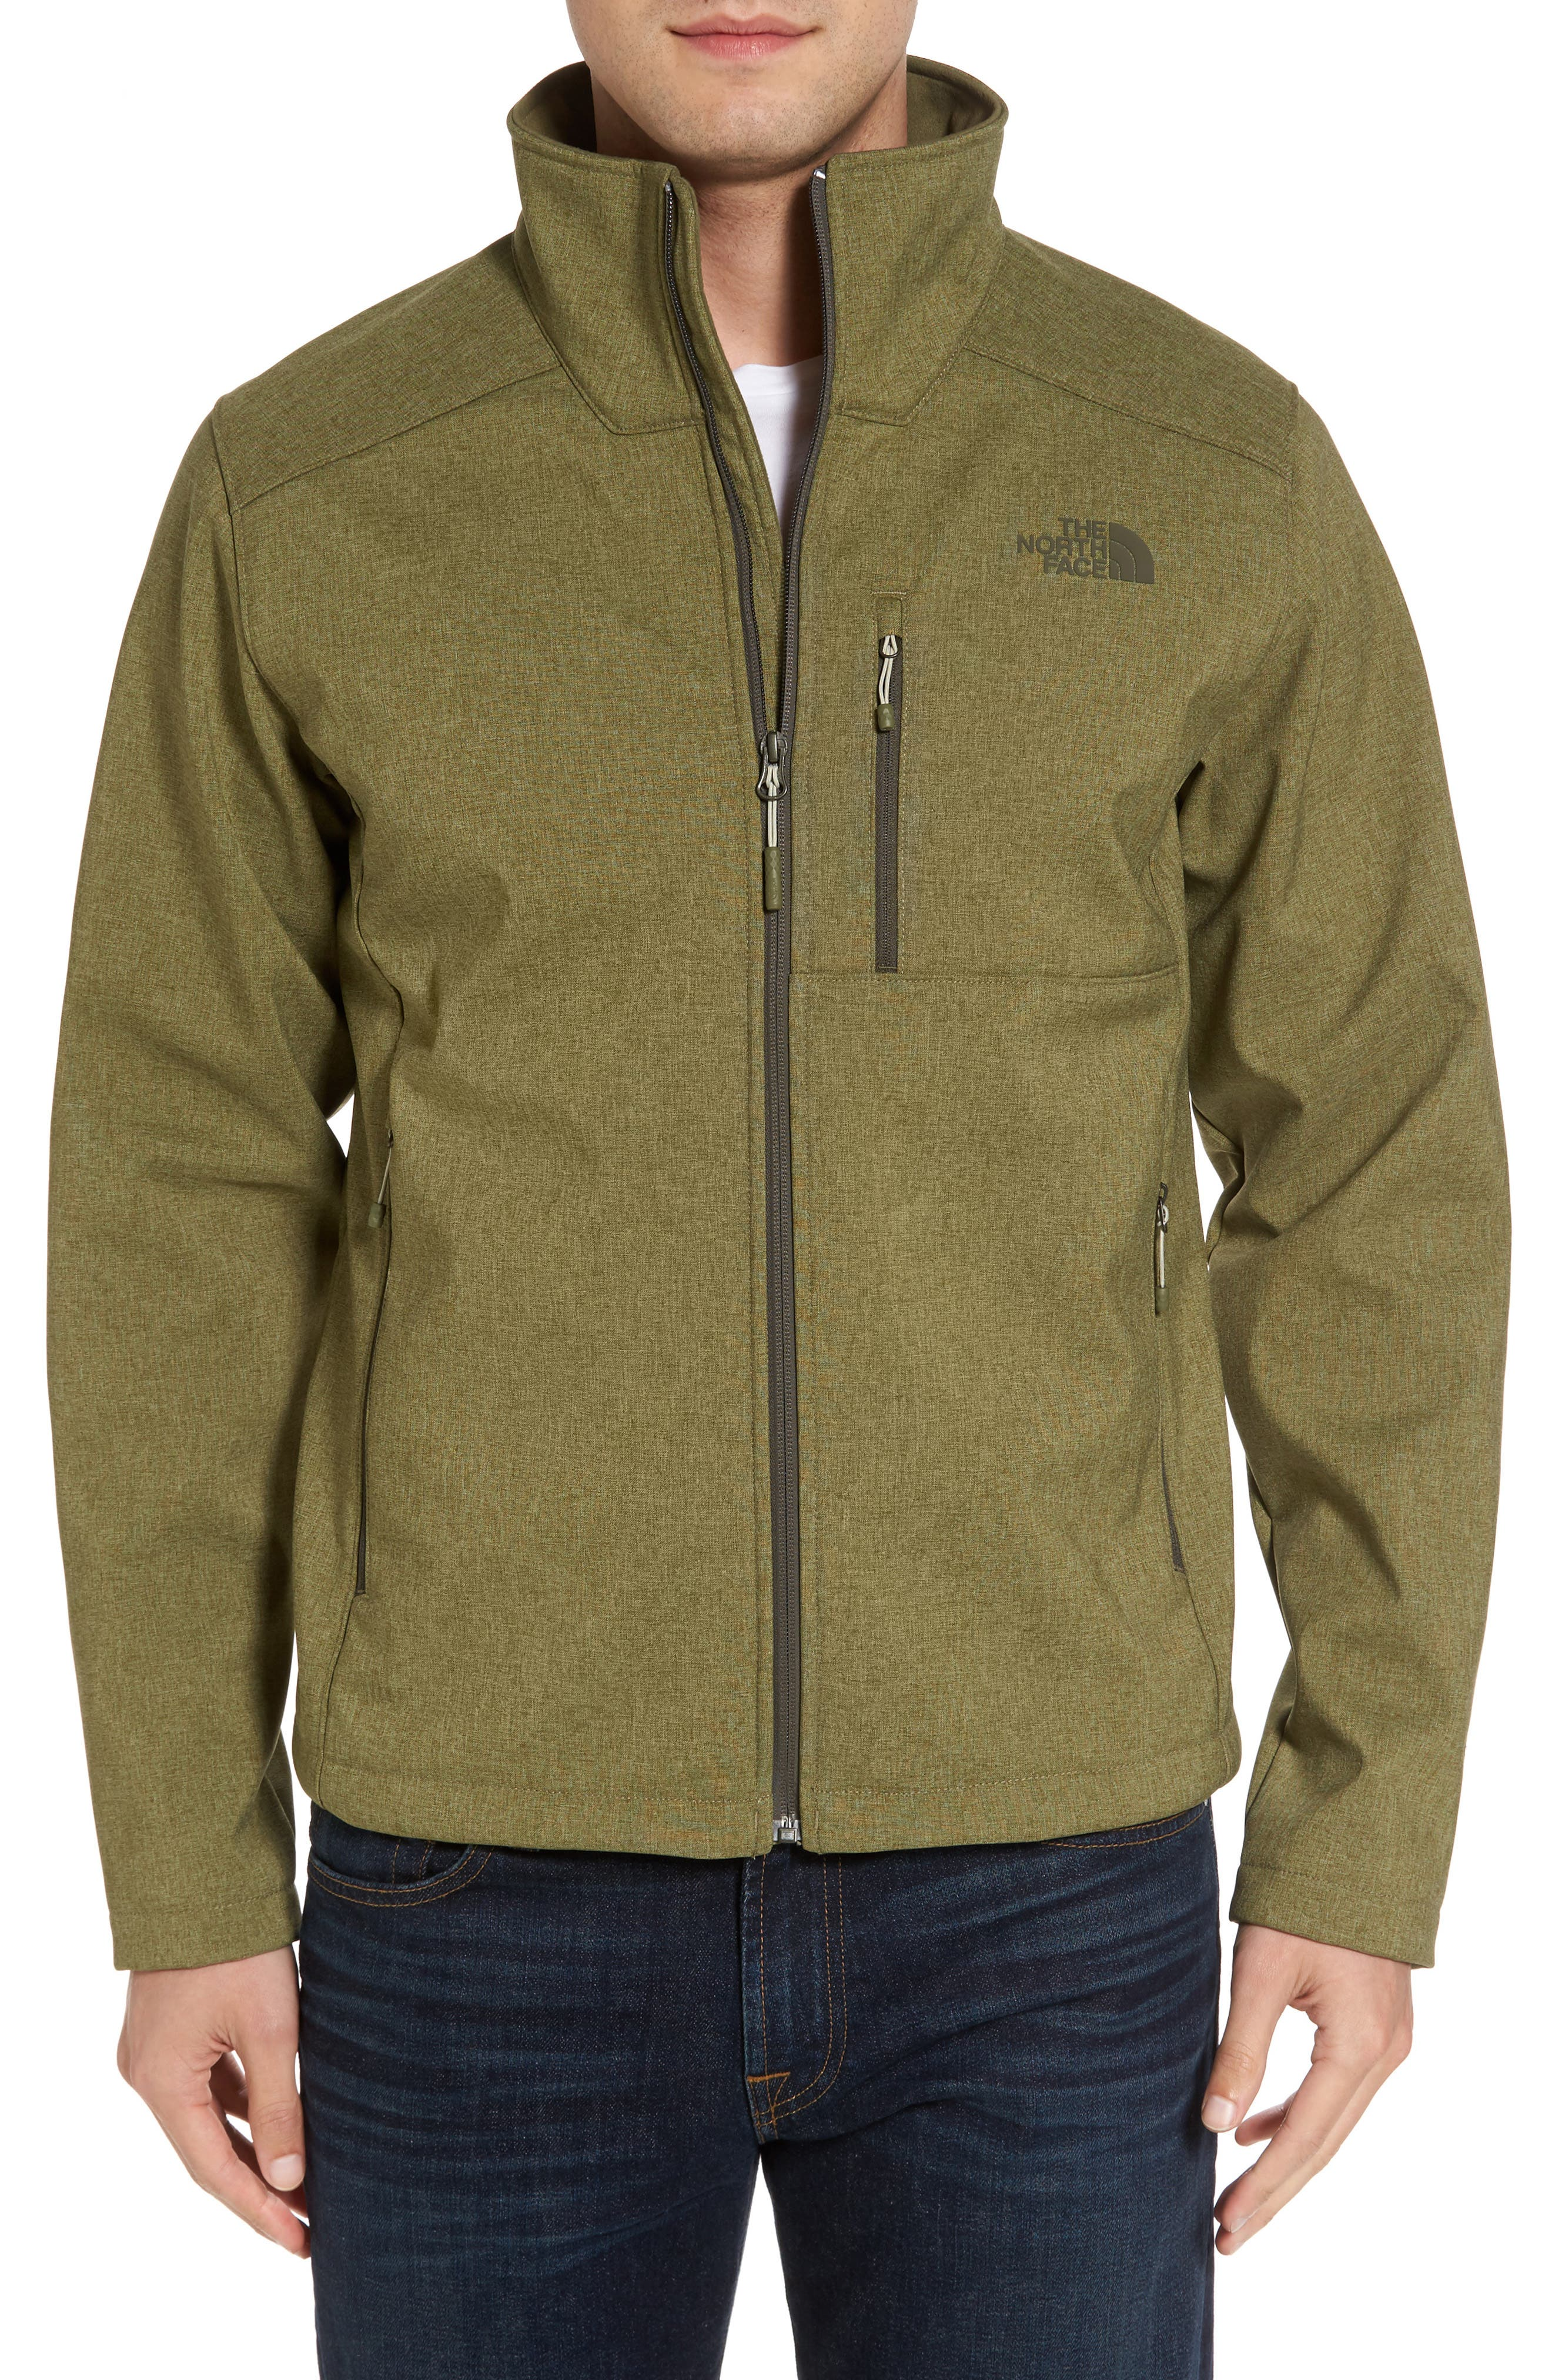 Alternate Image 1 Selected - The North Face 'Apex Bionic 2' Windproof & Water Resistant Soft Shell Jacket